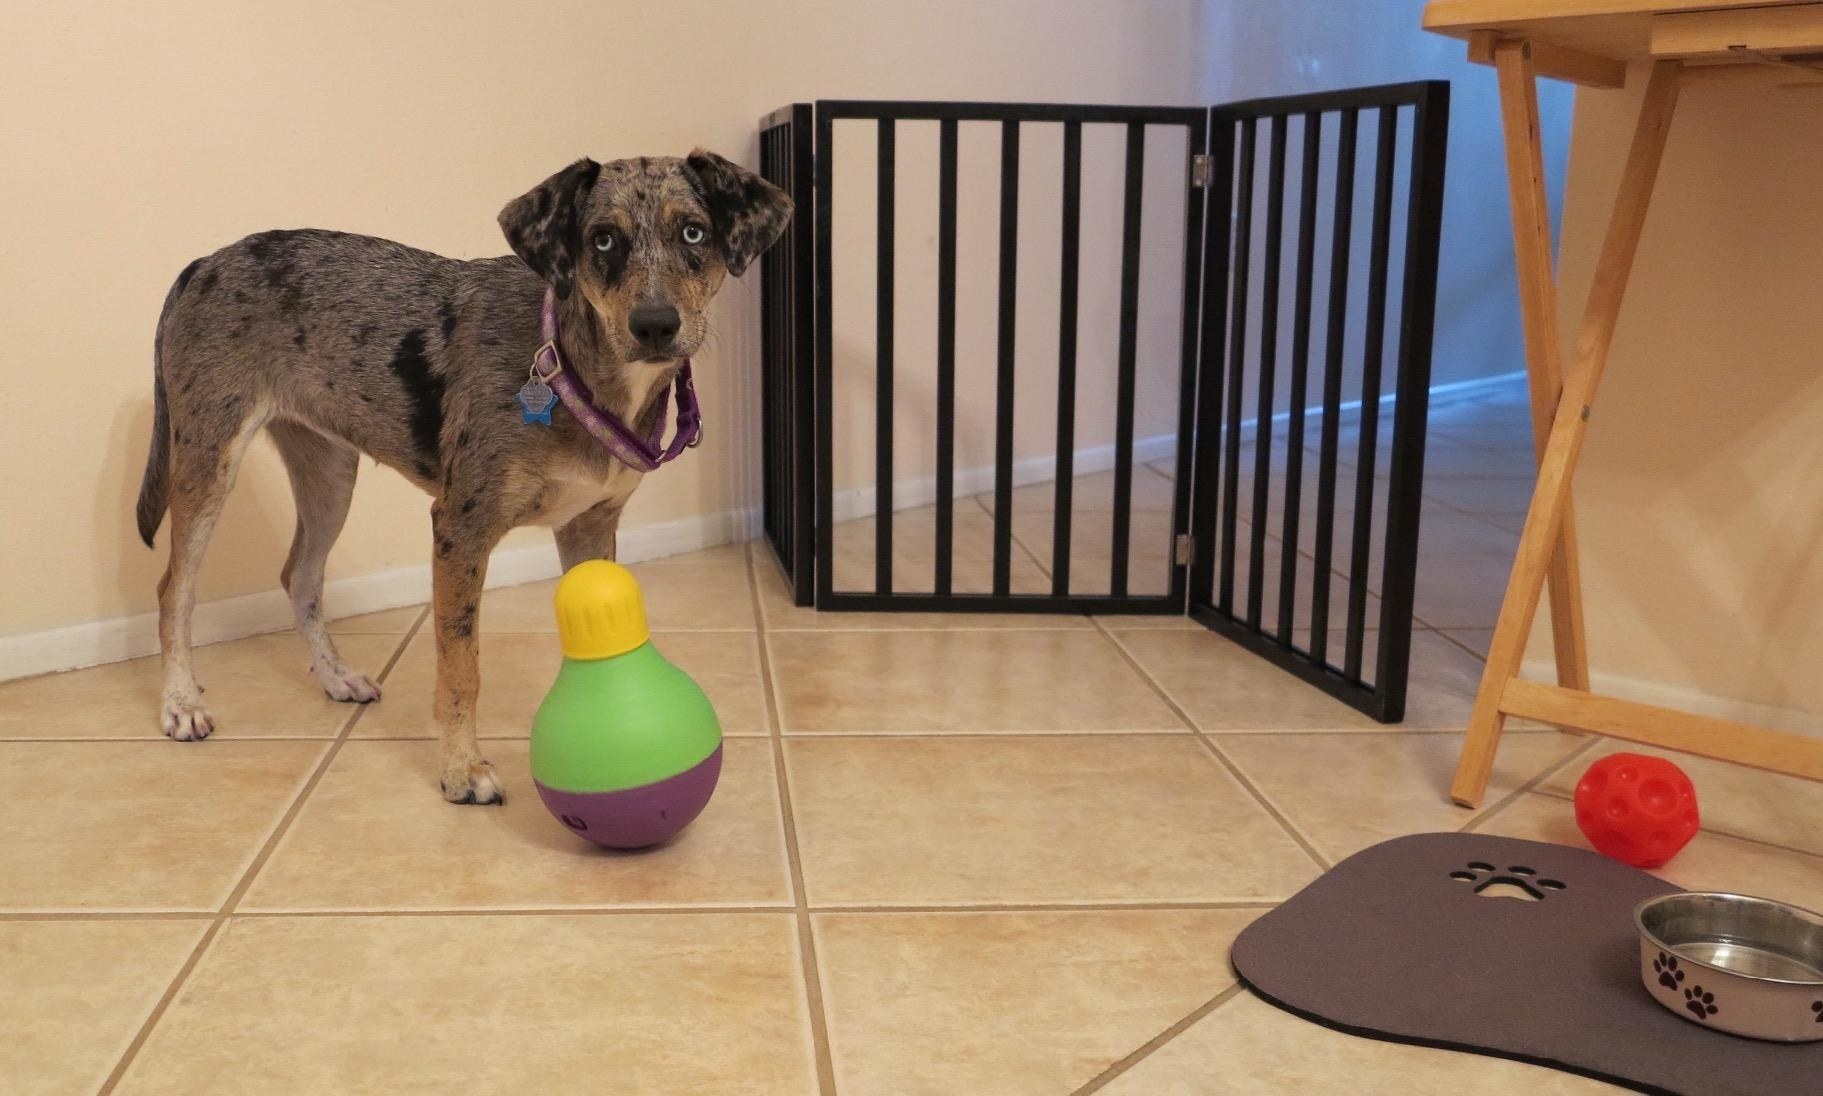 The toy, which is shaped almost like a squat bowling pin, with a rounded bottom, and a narrow top that is removed to insert kibble